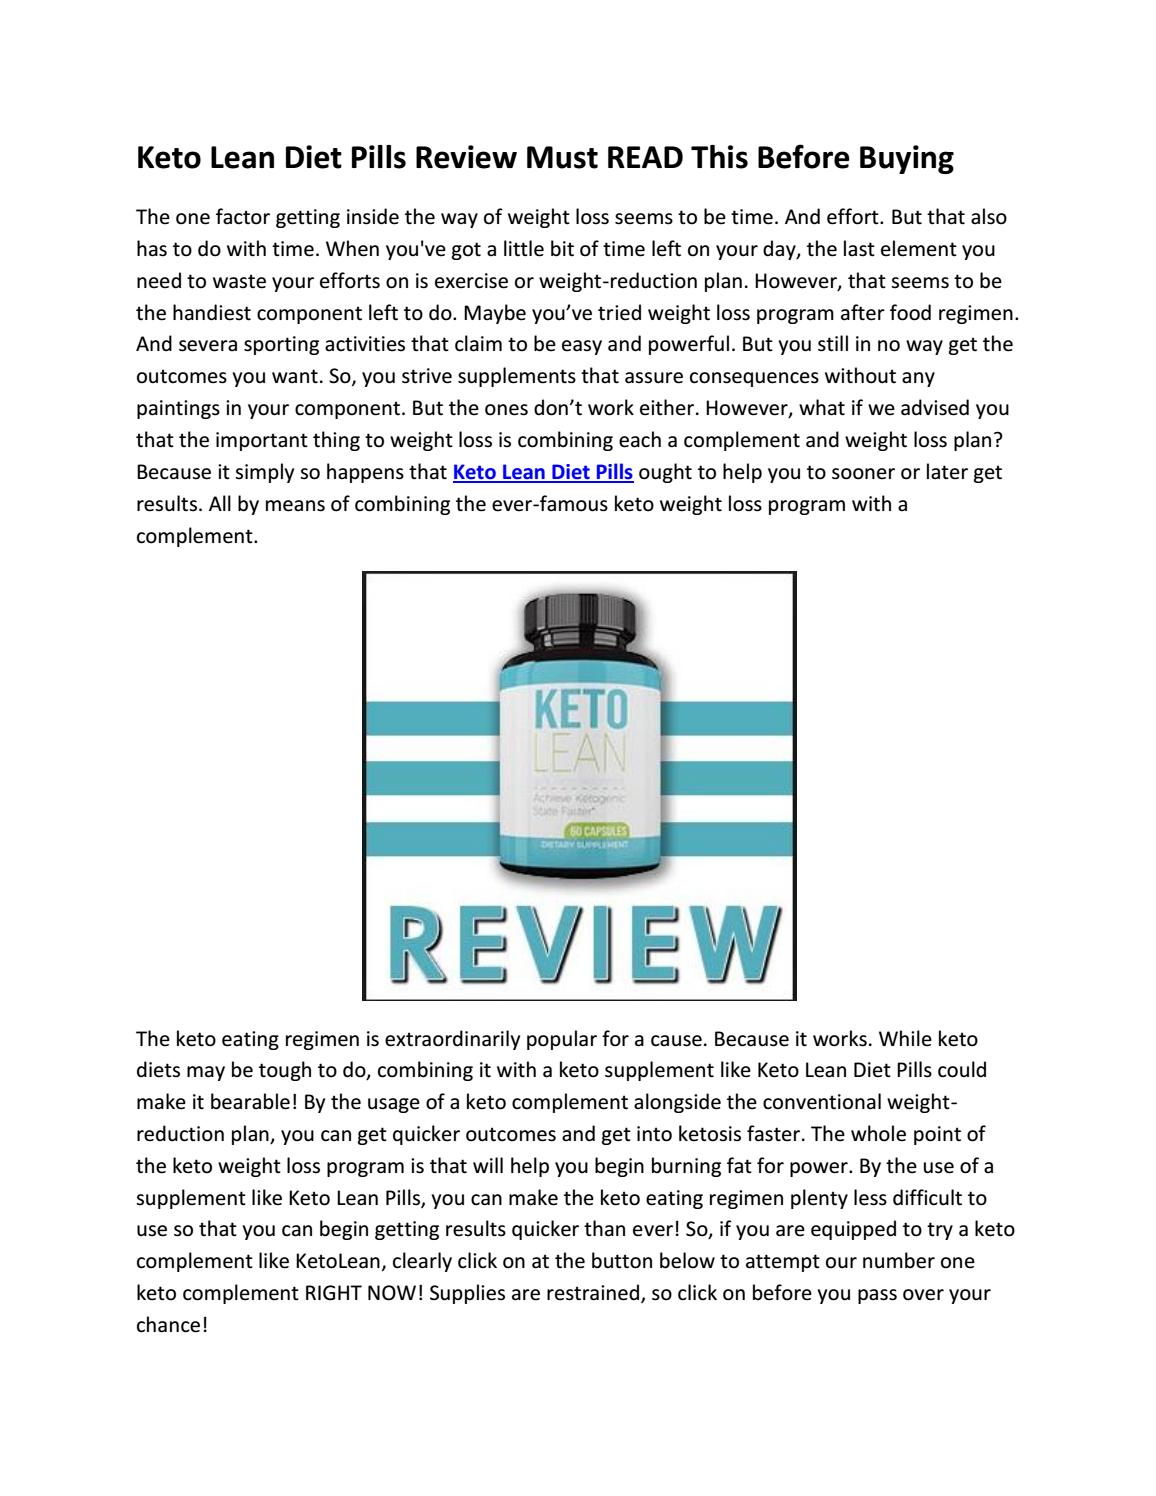 Keto Lean Diet Pills Review Must READ This Before Buying by